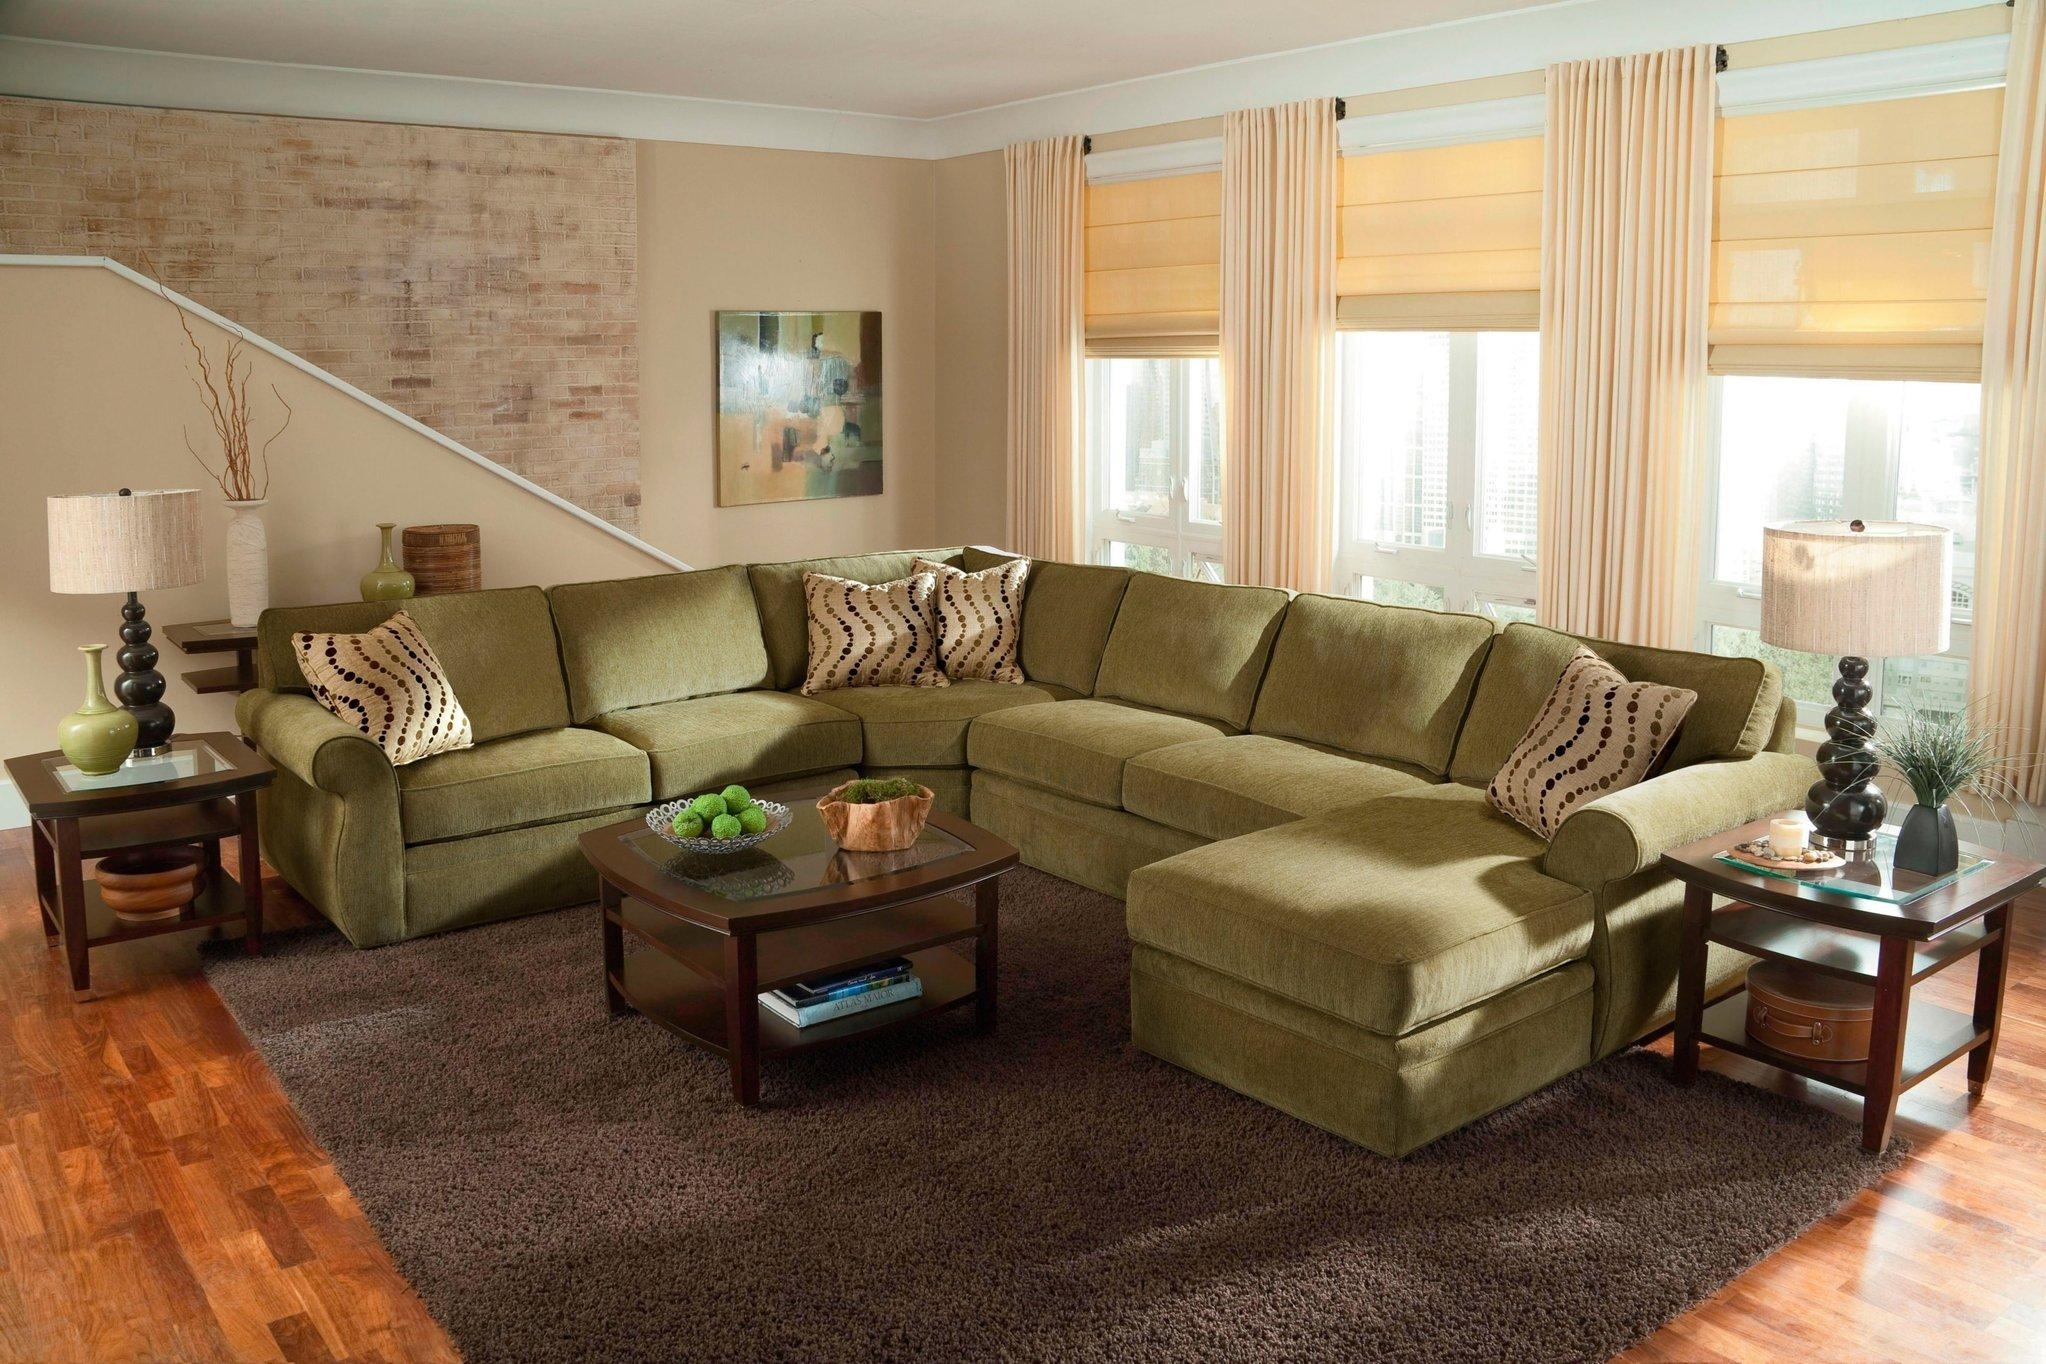 Broyhill Furniture Online – Broyhill Bedroom Furniture – Dining Pertaining To Broyhill Reclining Sofas (Image 5 of 20)